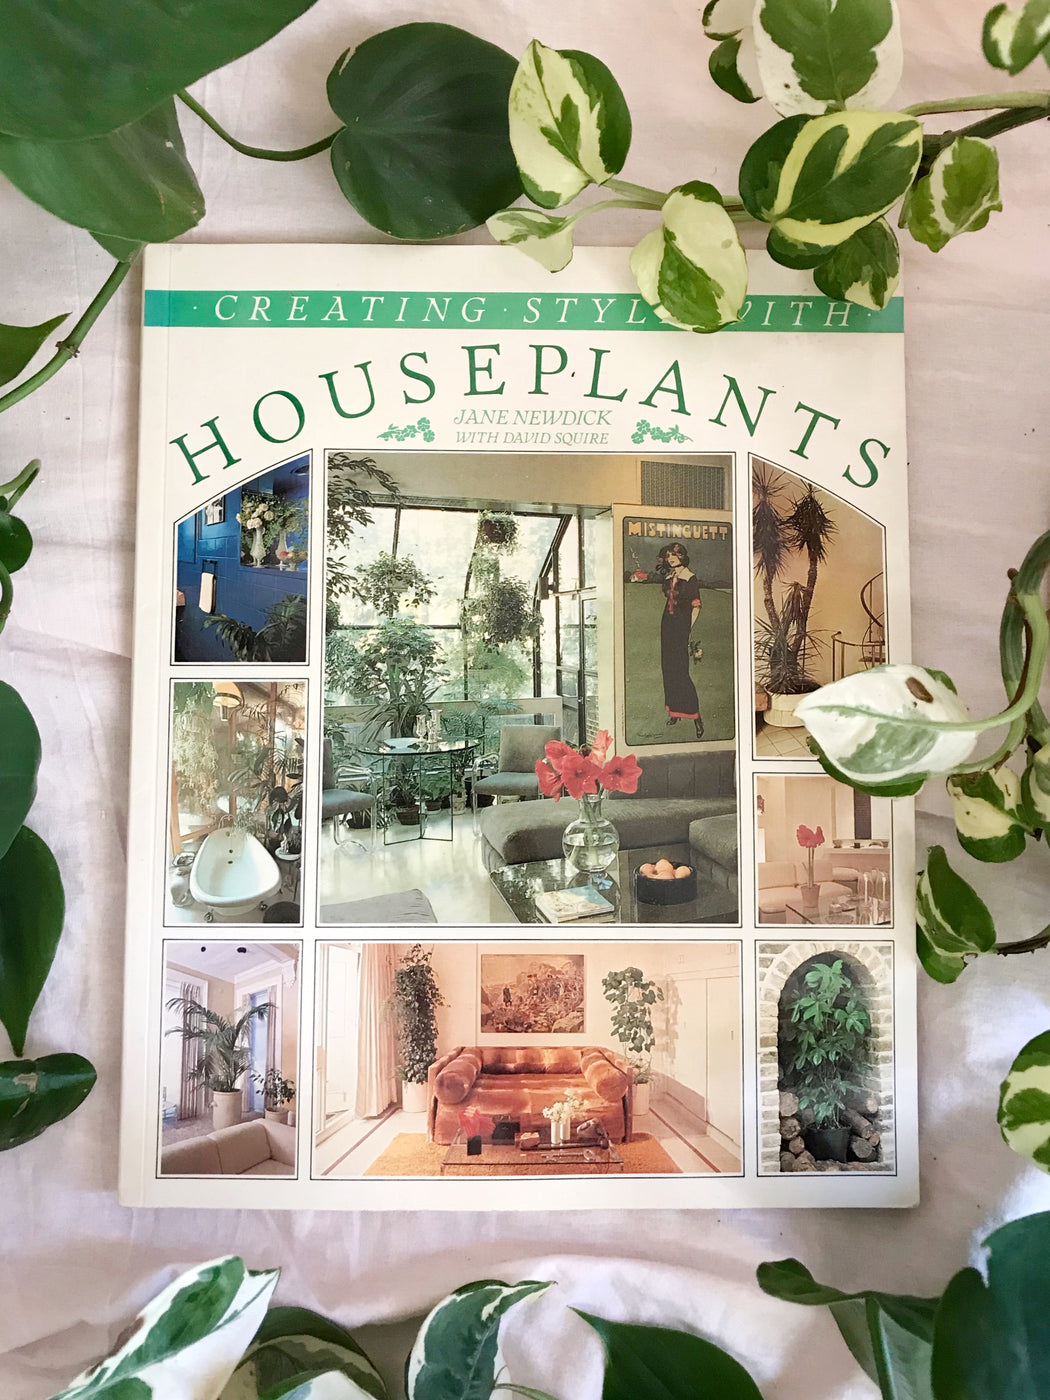 Creating Style with Houseplants by Jane Newdick - Storytellers Workshop